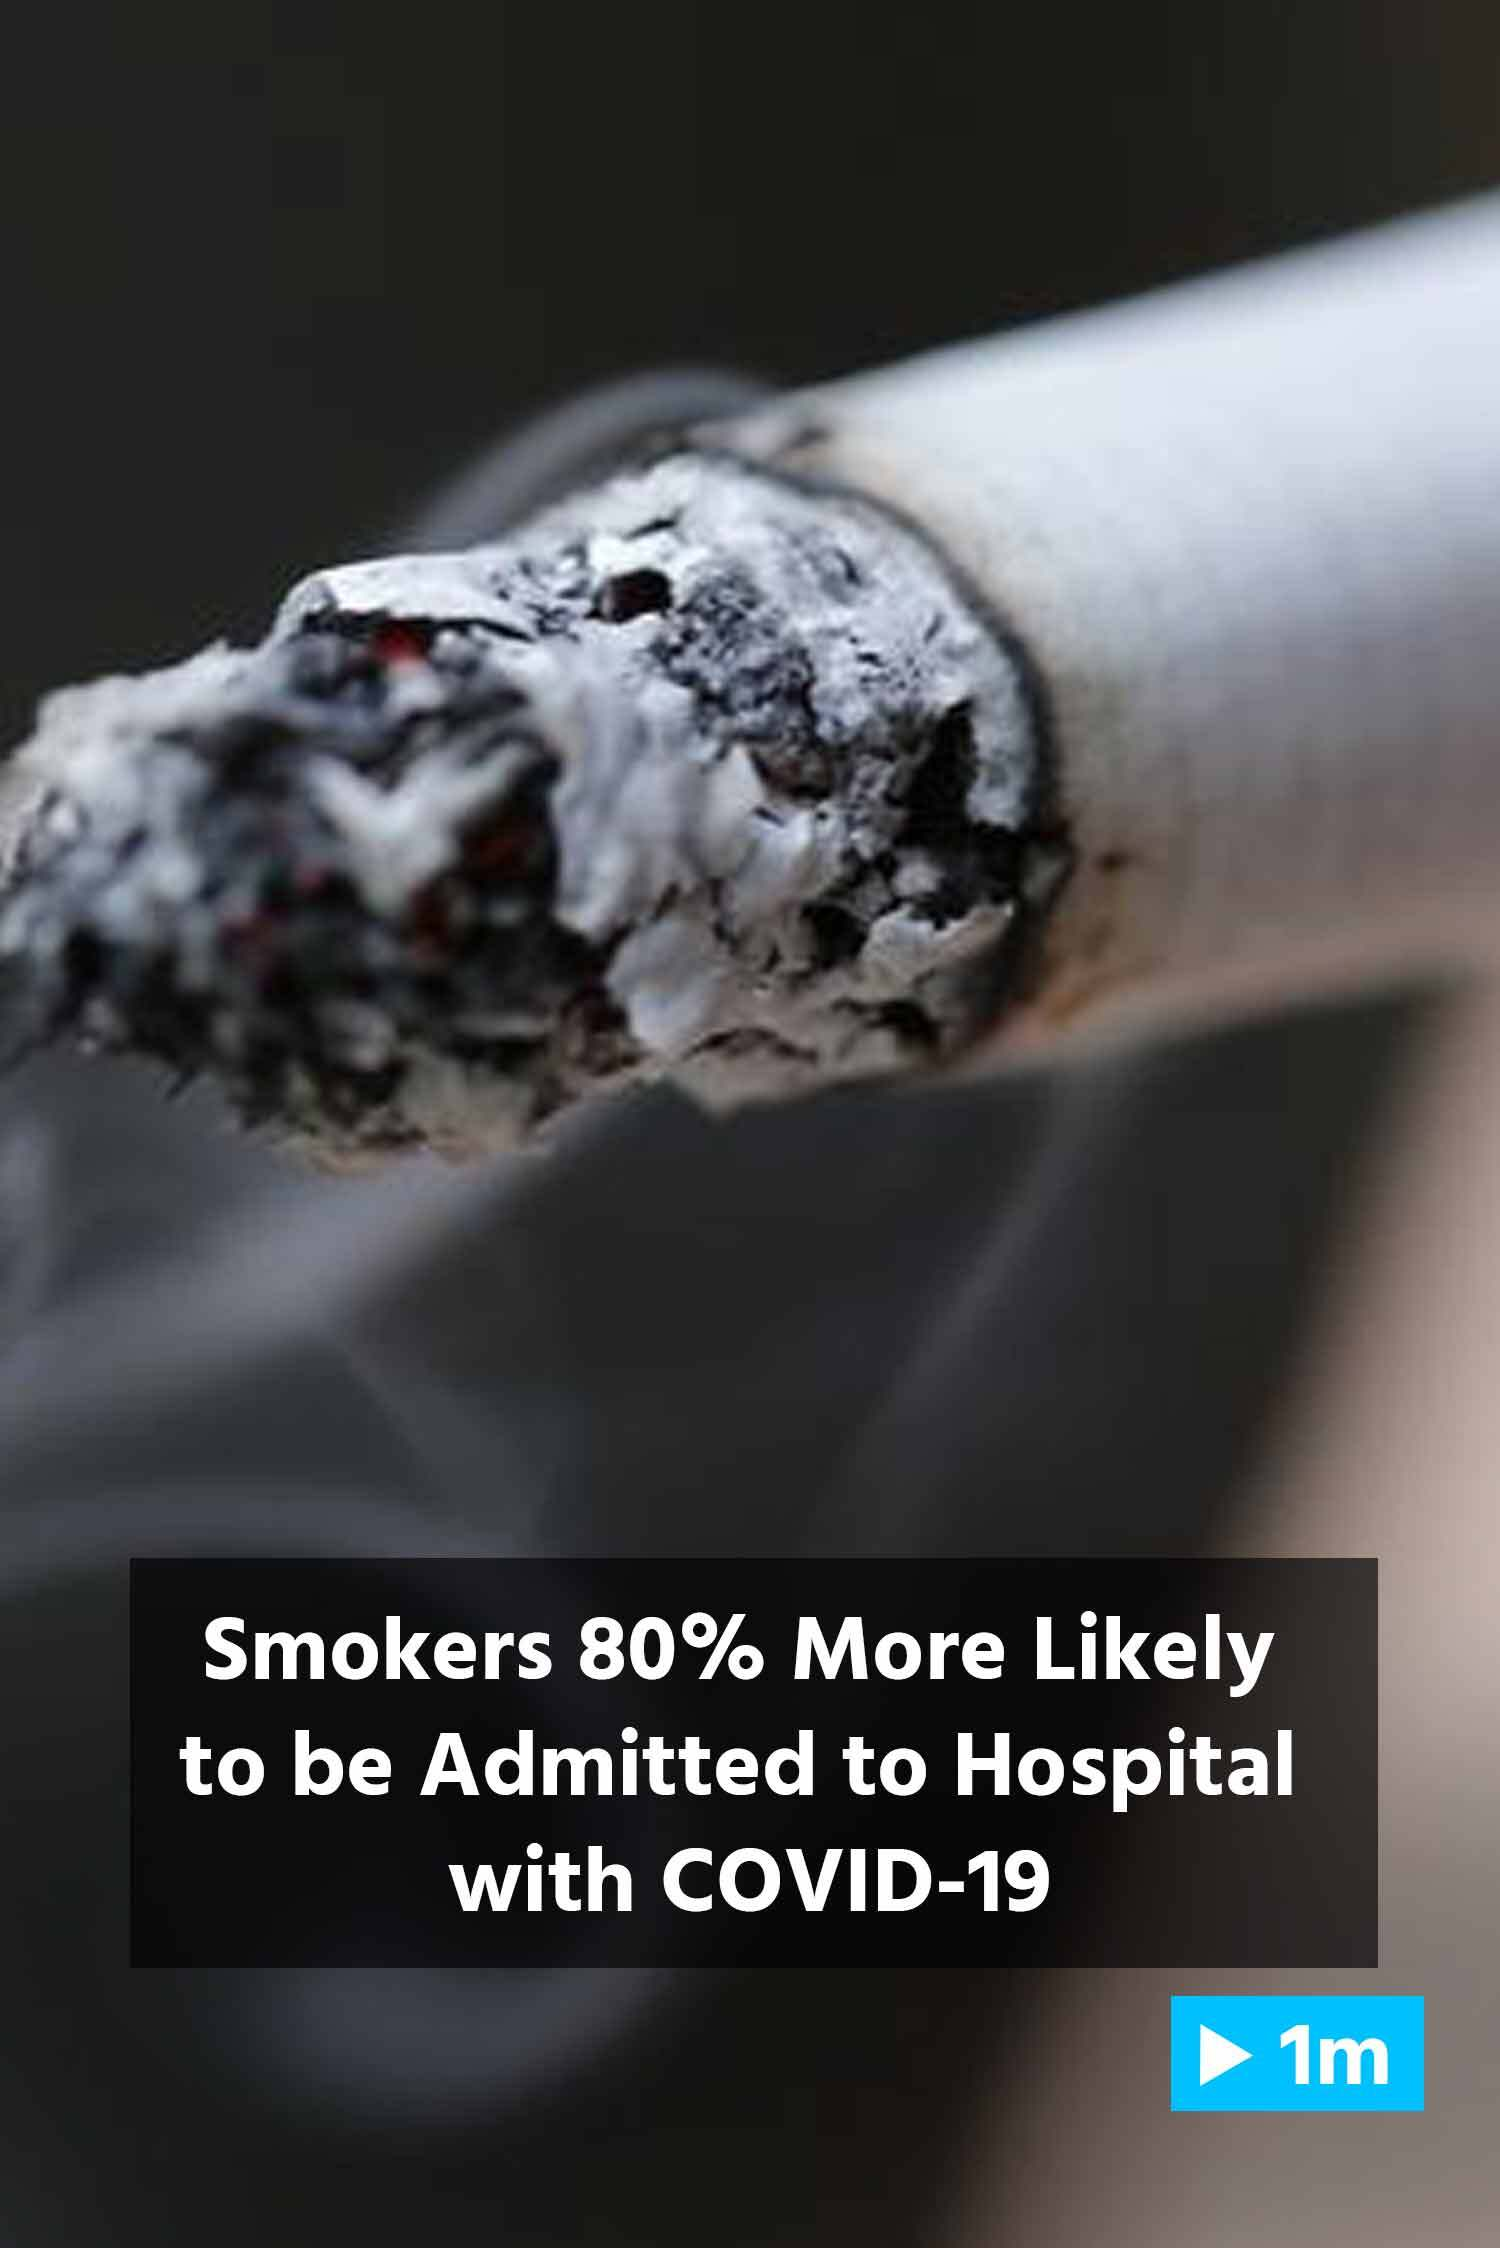 Reuters Report: Smokers 80% More Likely To Be Admitted To Hospital With COVID-19